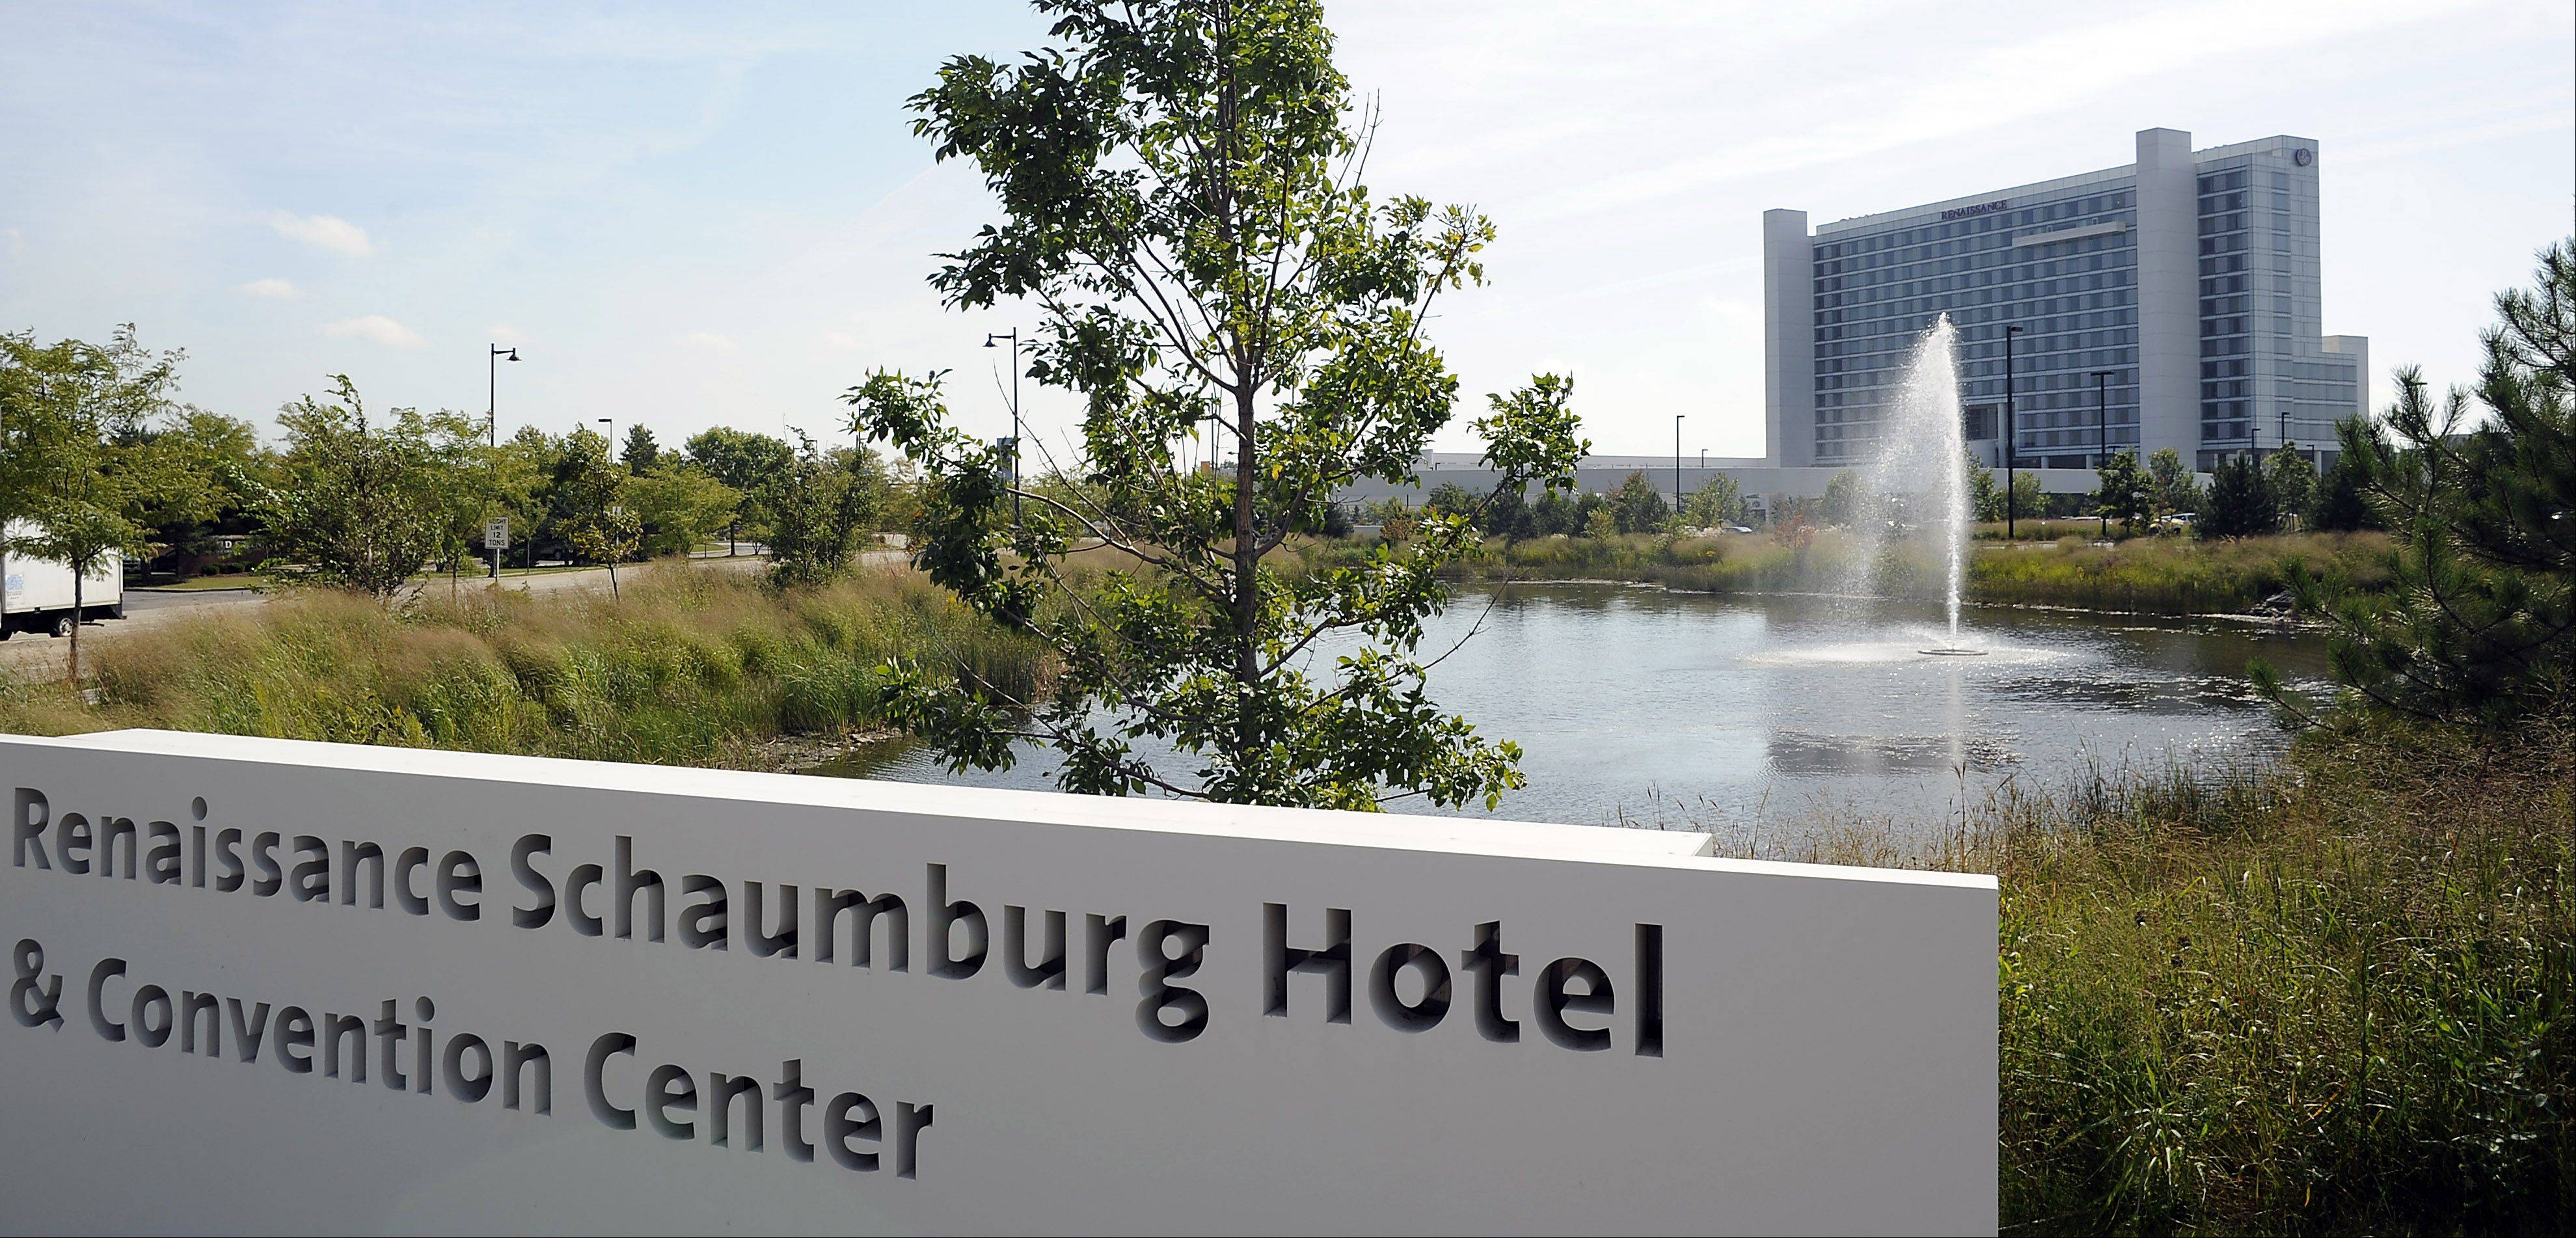 Schaumburg envisions the Renaissance Hotel and Convention Center as the centerpiece of a new suburban entertainment district.